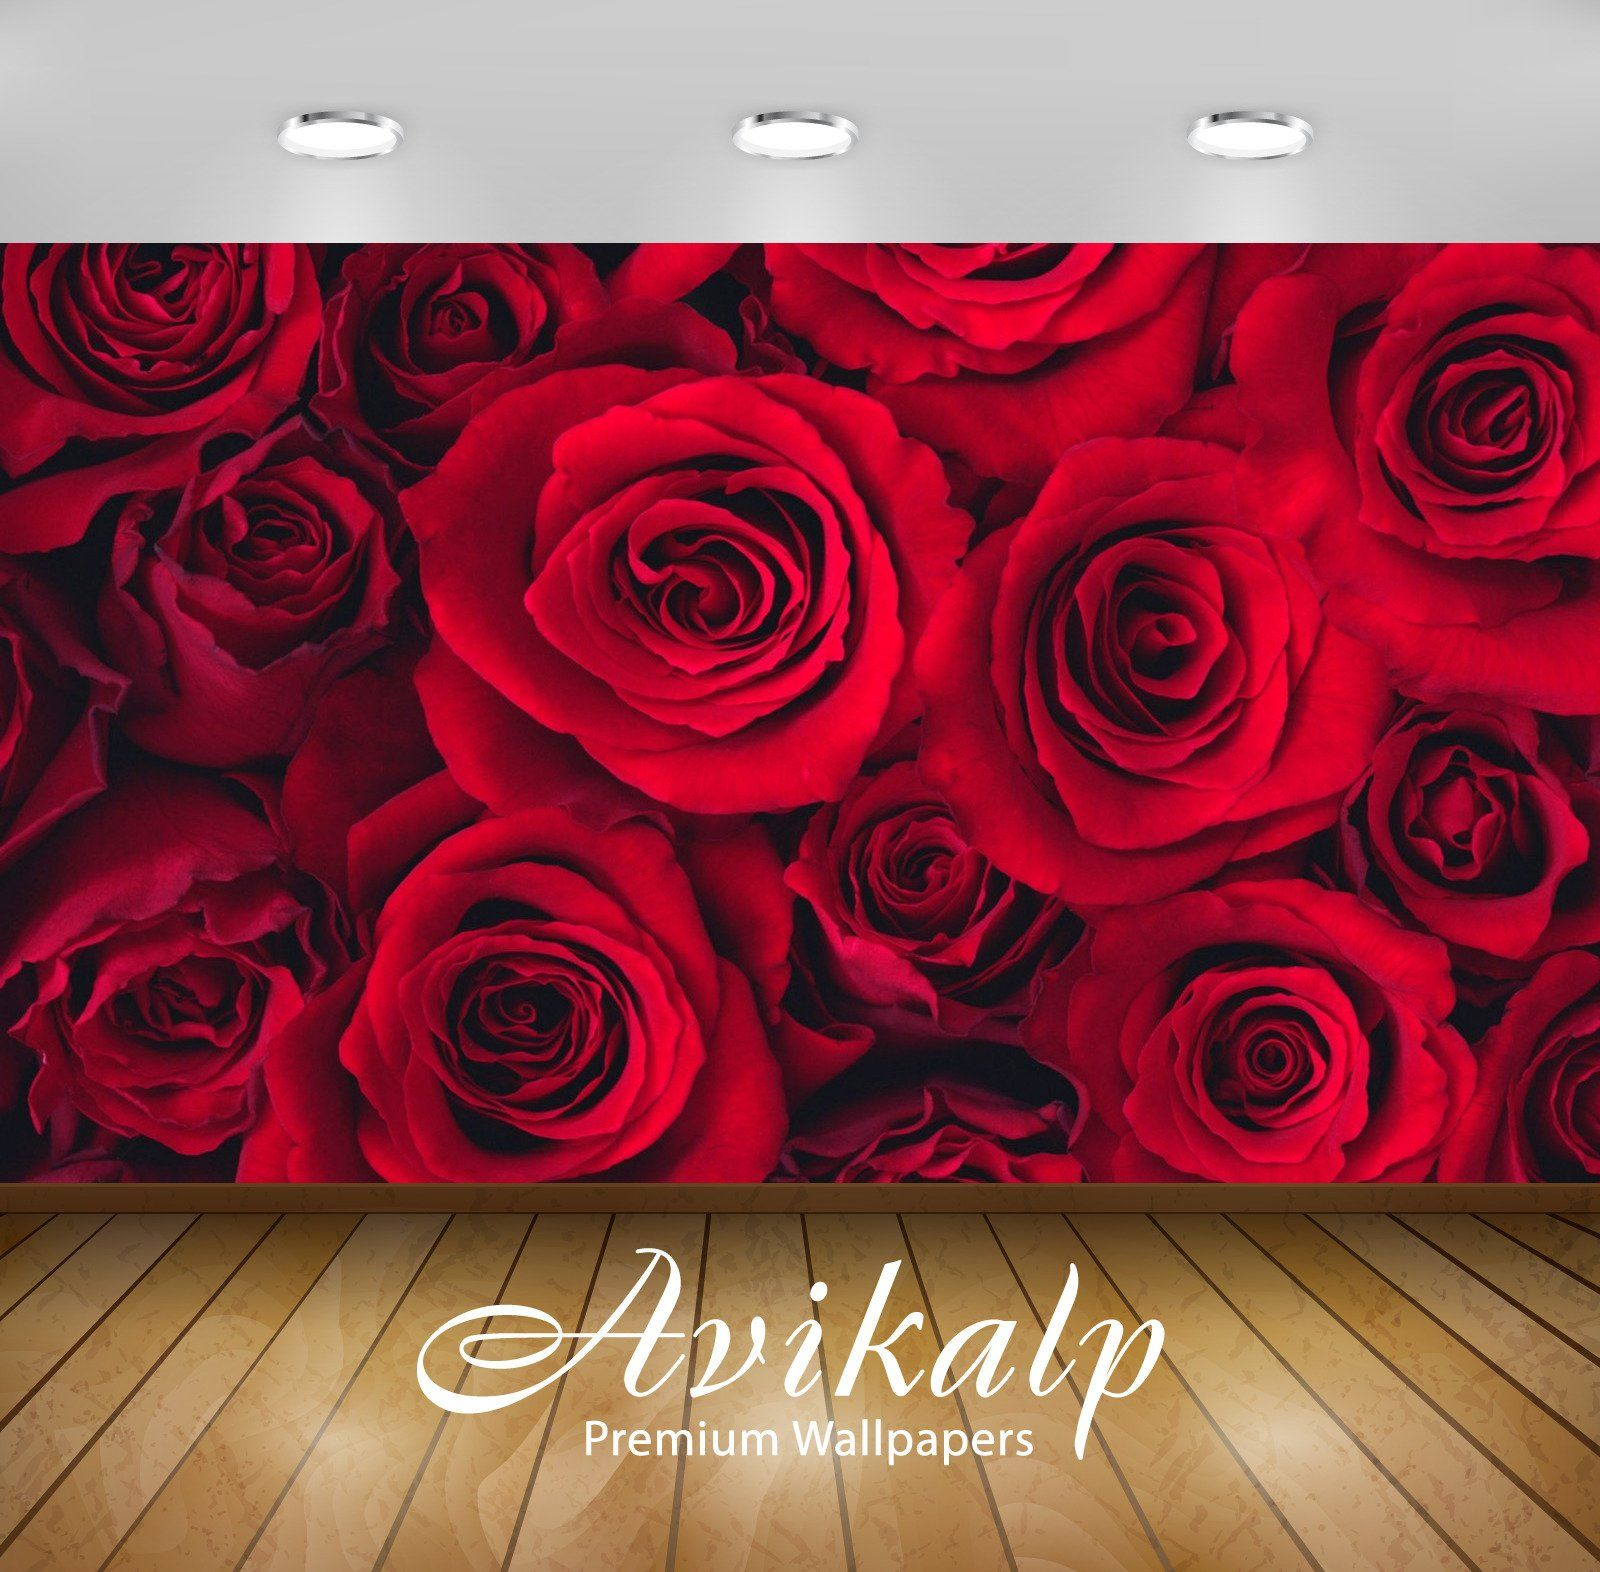 Avikalp Exclusive Red Roses AWI1181 HD Wallpapers For